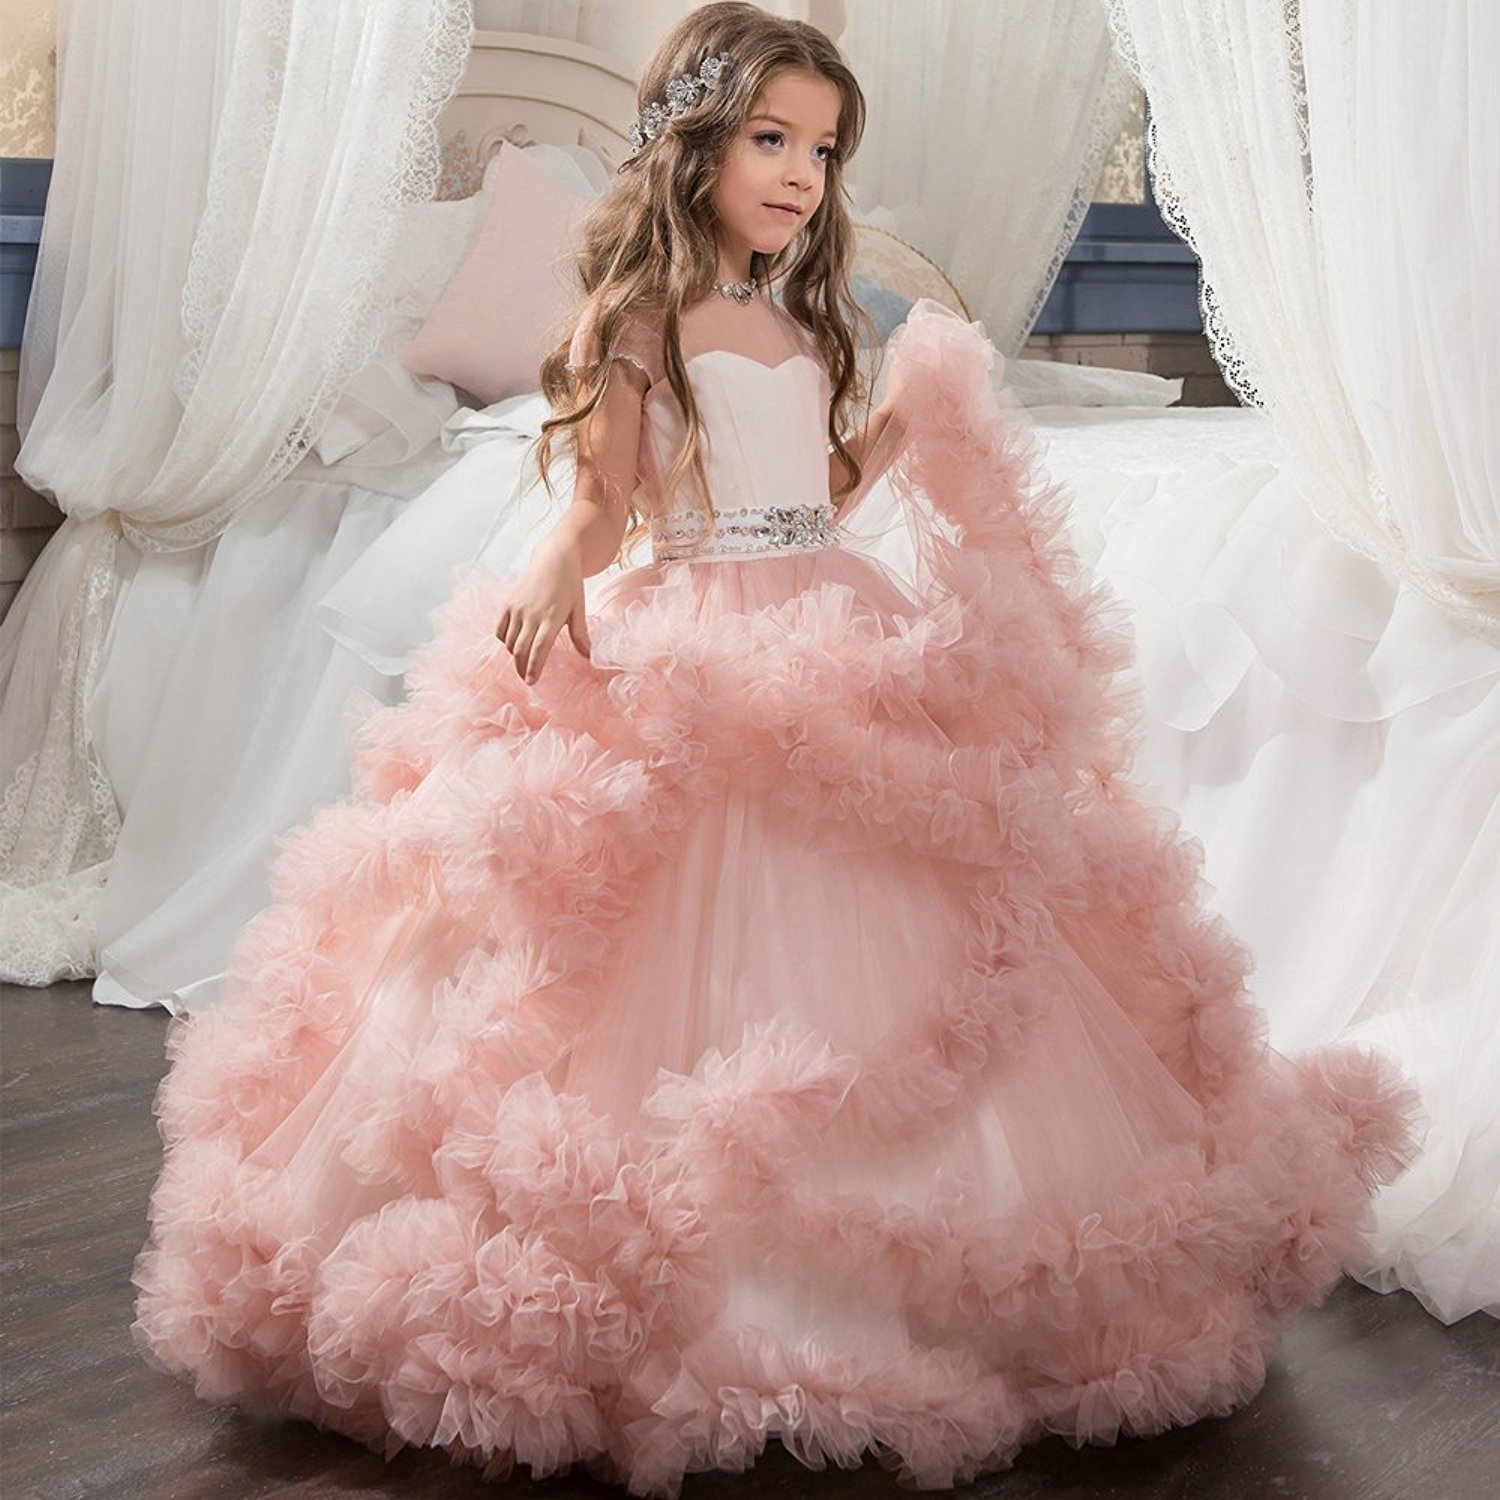 Flower Girl Dresses For Garden Weddings: Teenage Girls Clothing 12 Years Dresses For Party And